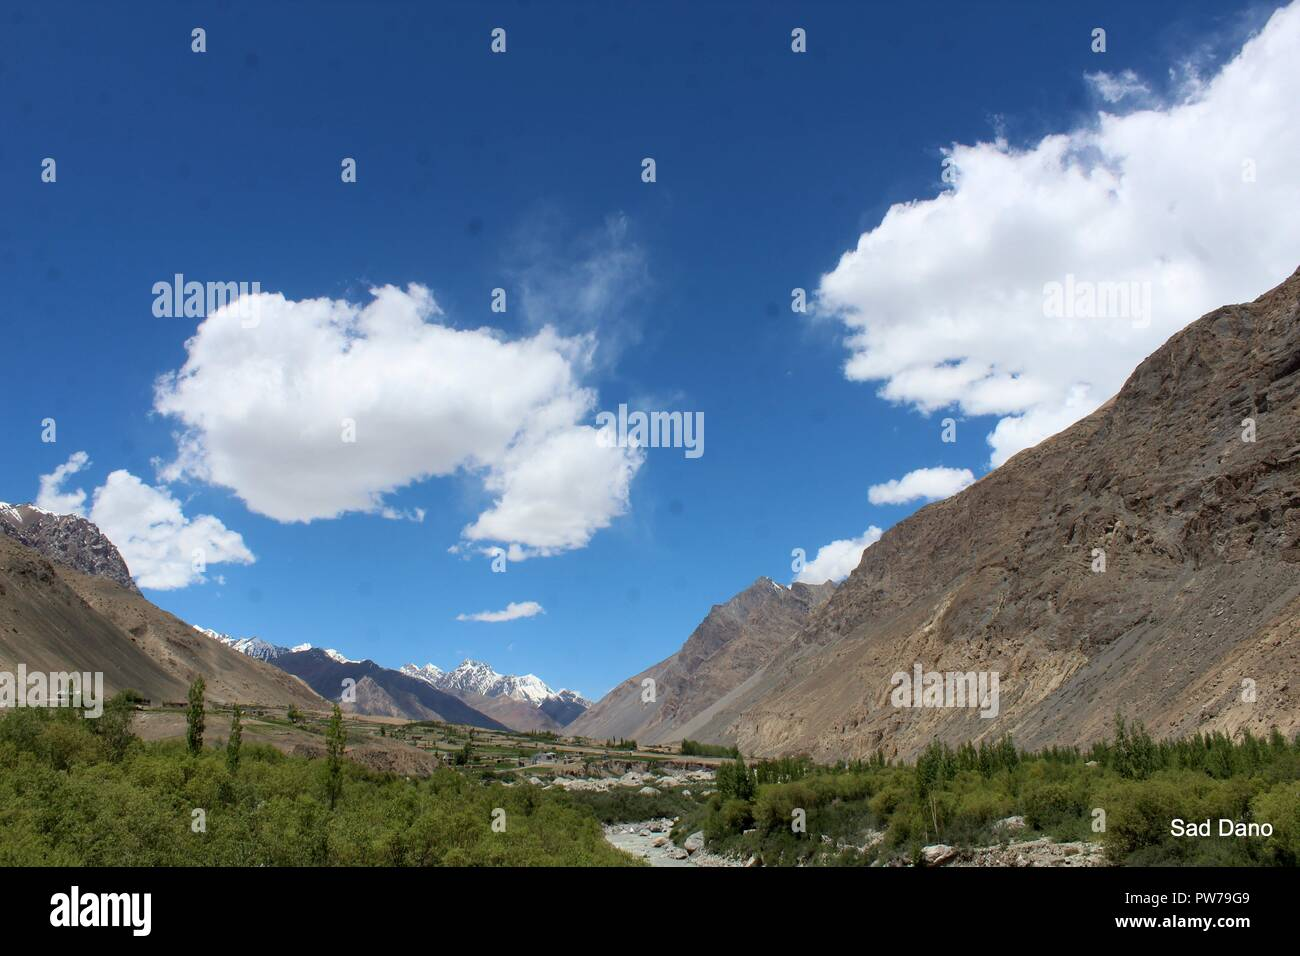 thease all picture taken by my hunza clicks official page if you want to visit hunza contact us www.facebook.com/myhunzaclick - Stock Image